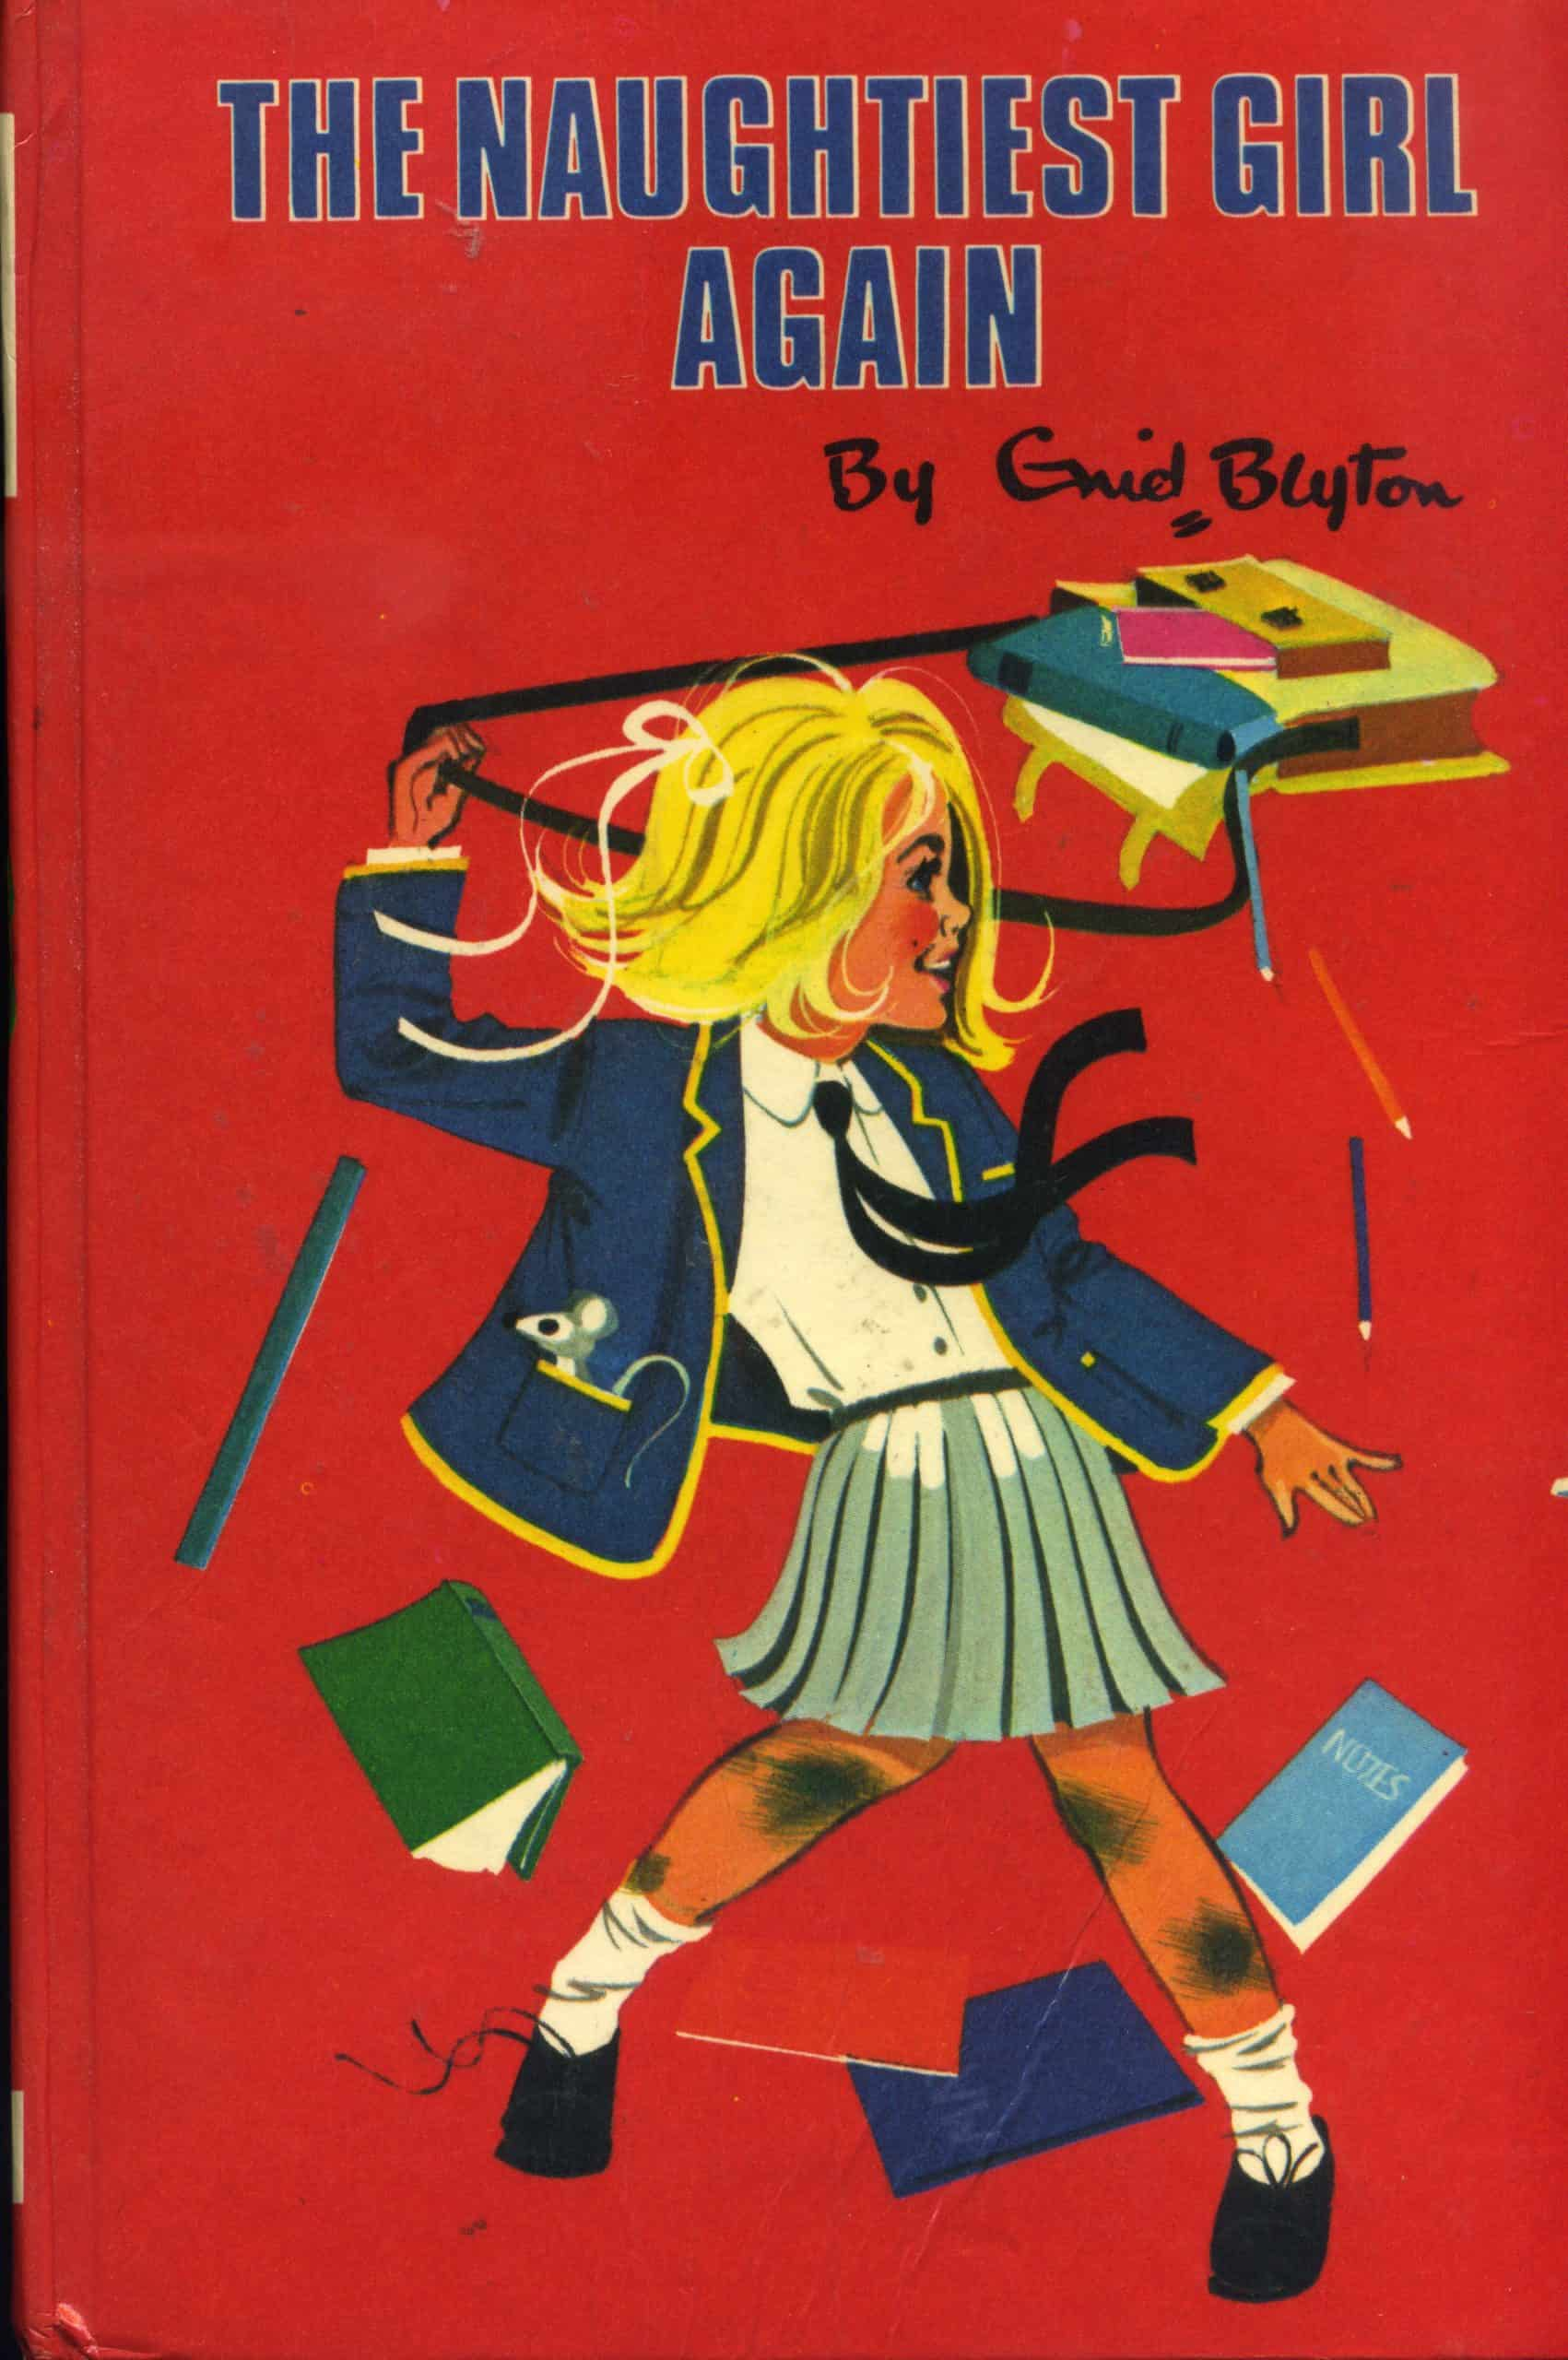 The naughtiest girl again enid blyton book